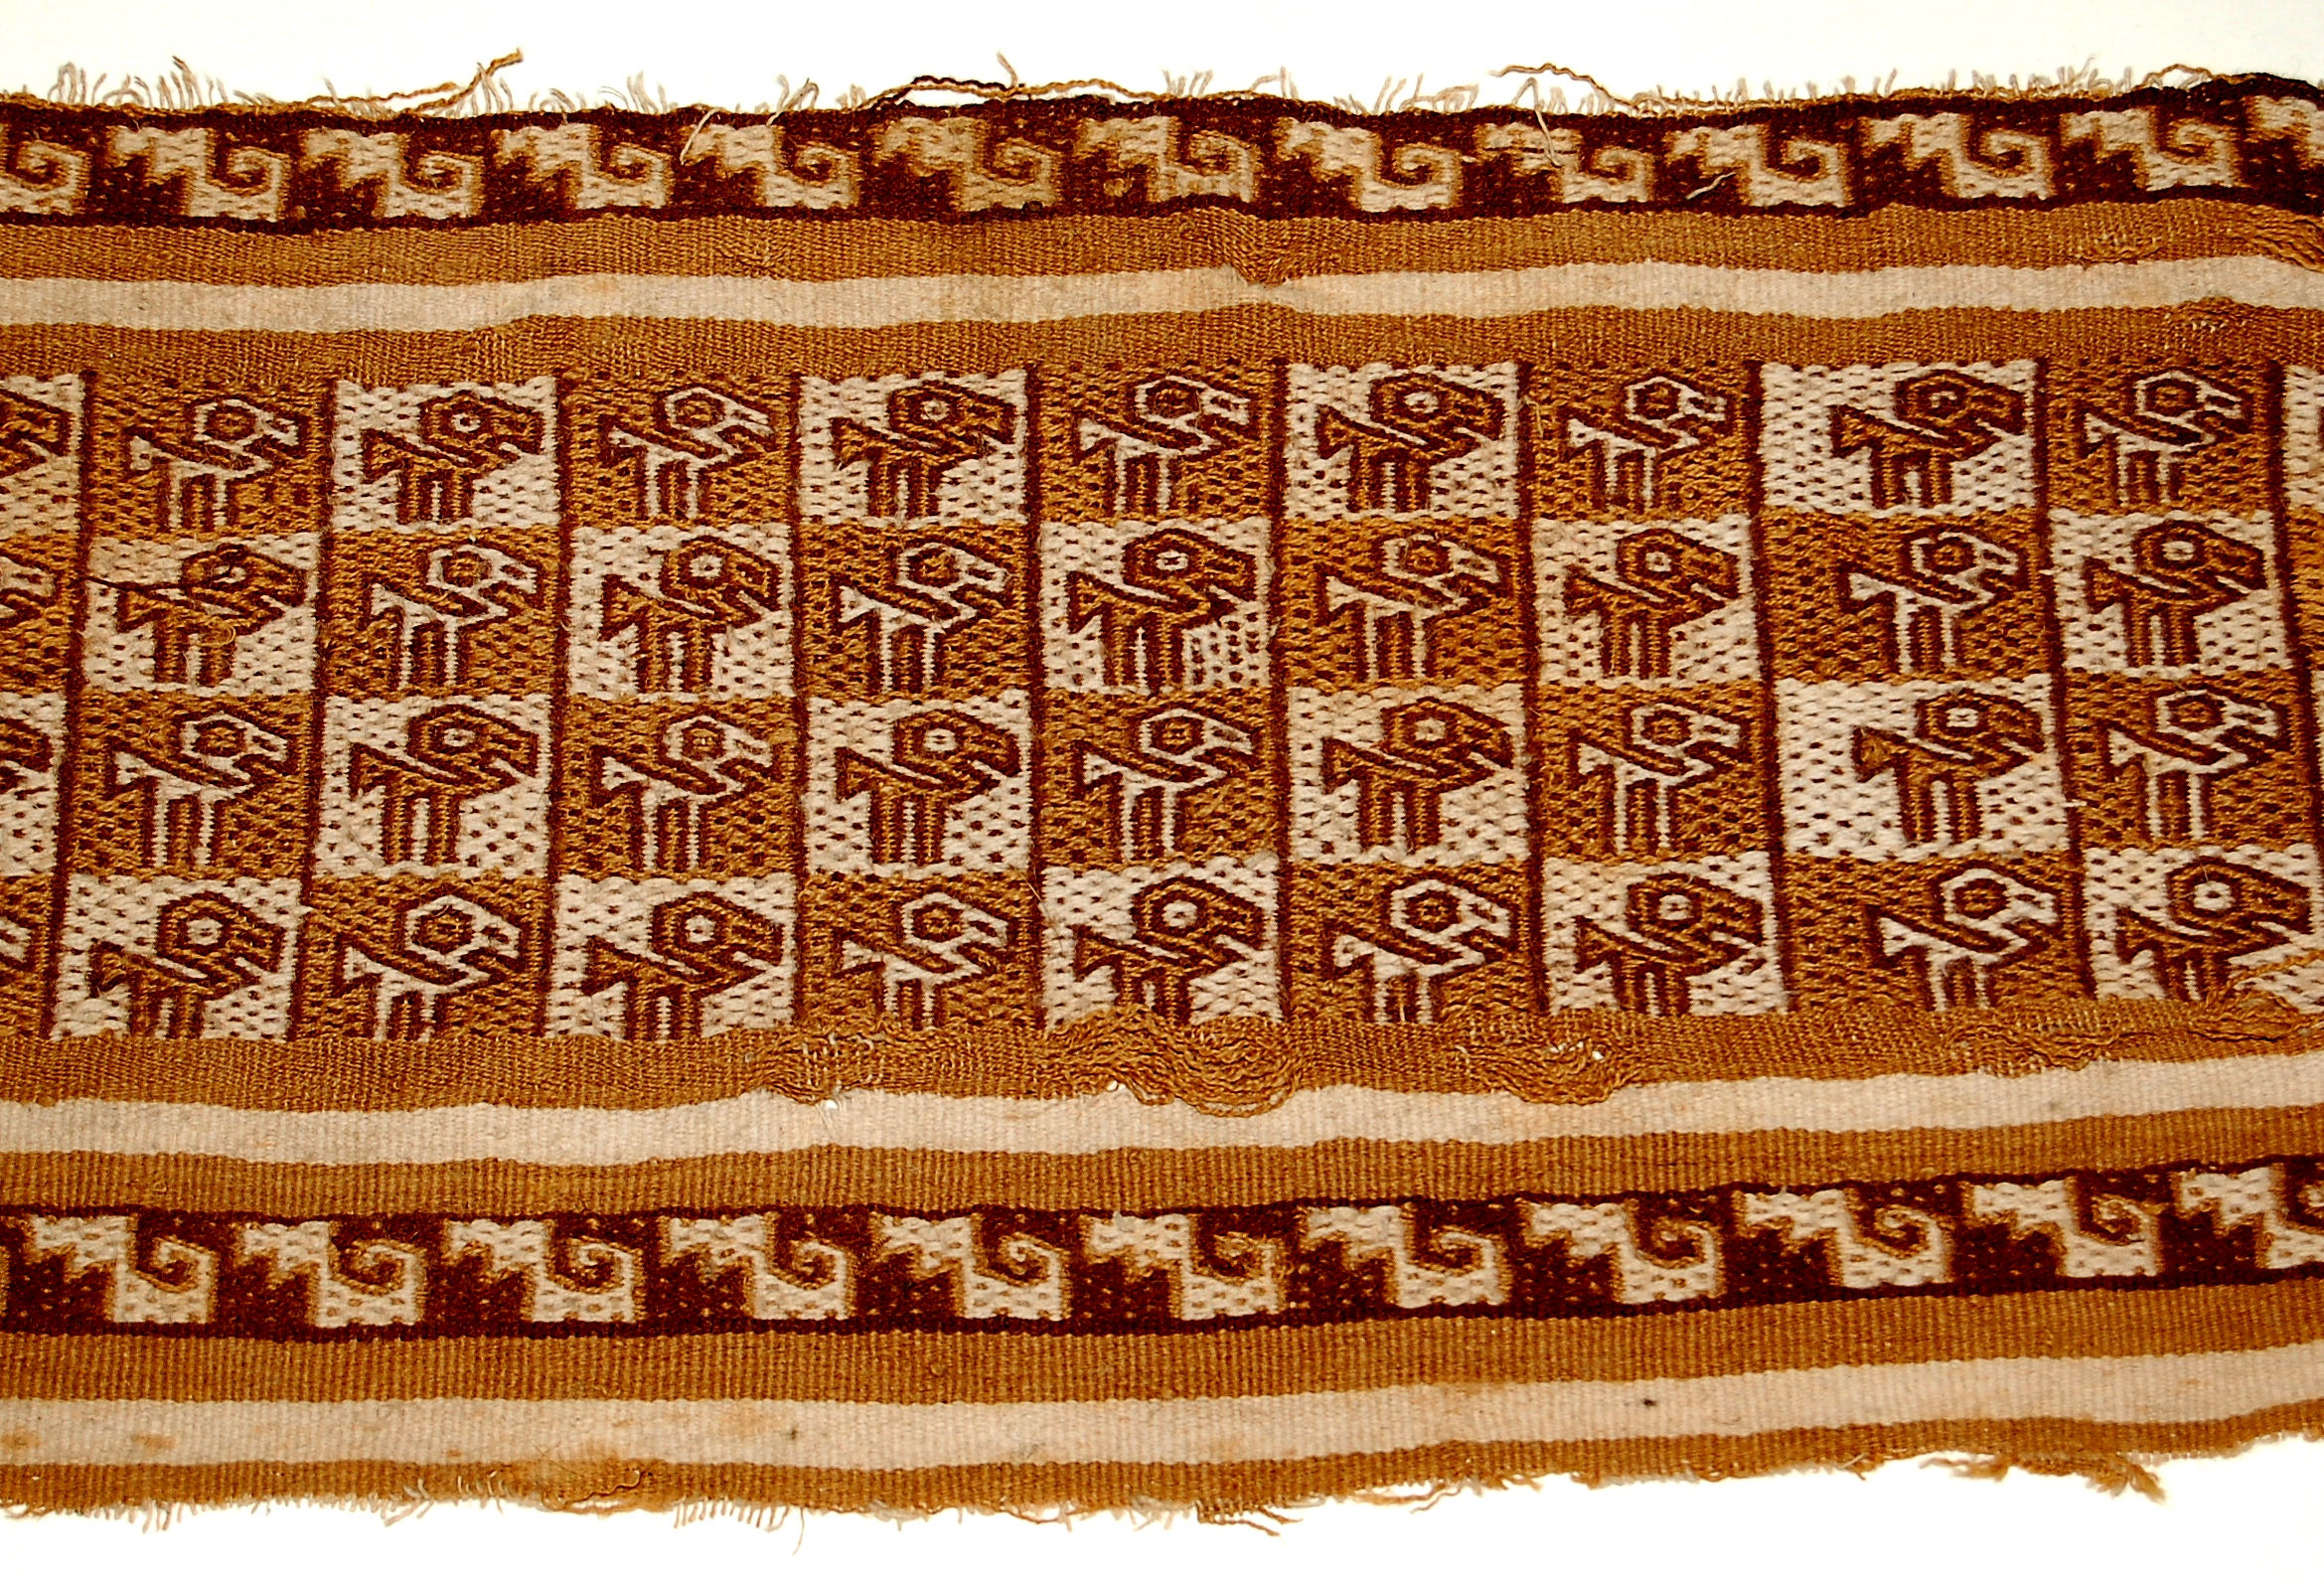 Arte Textil Latino Peru 1000 43 Images About Precolumbian Textiles On Pinterest